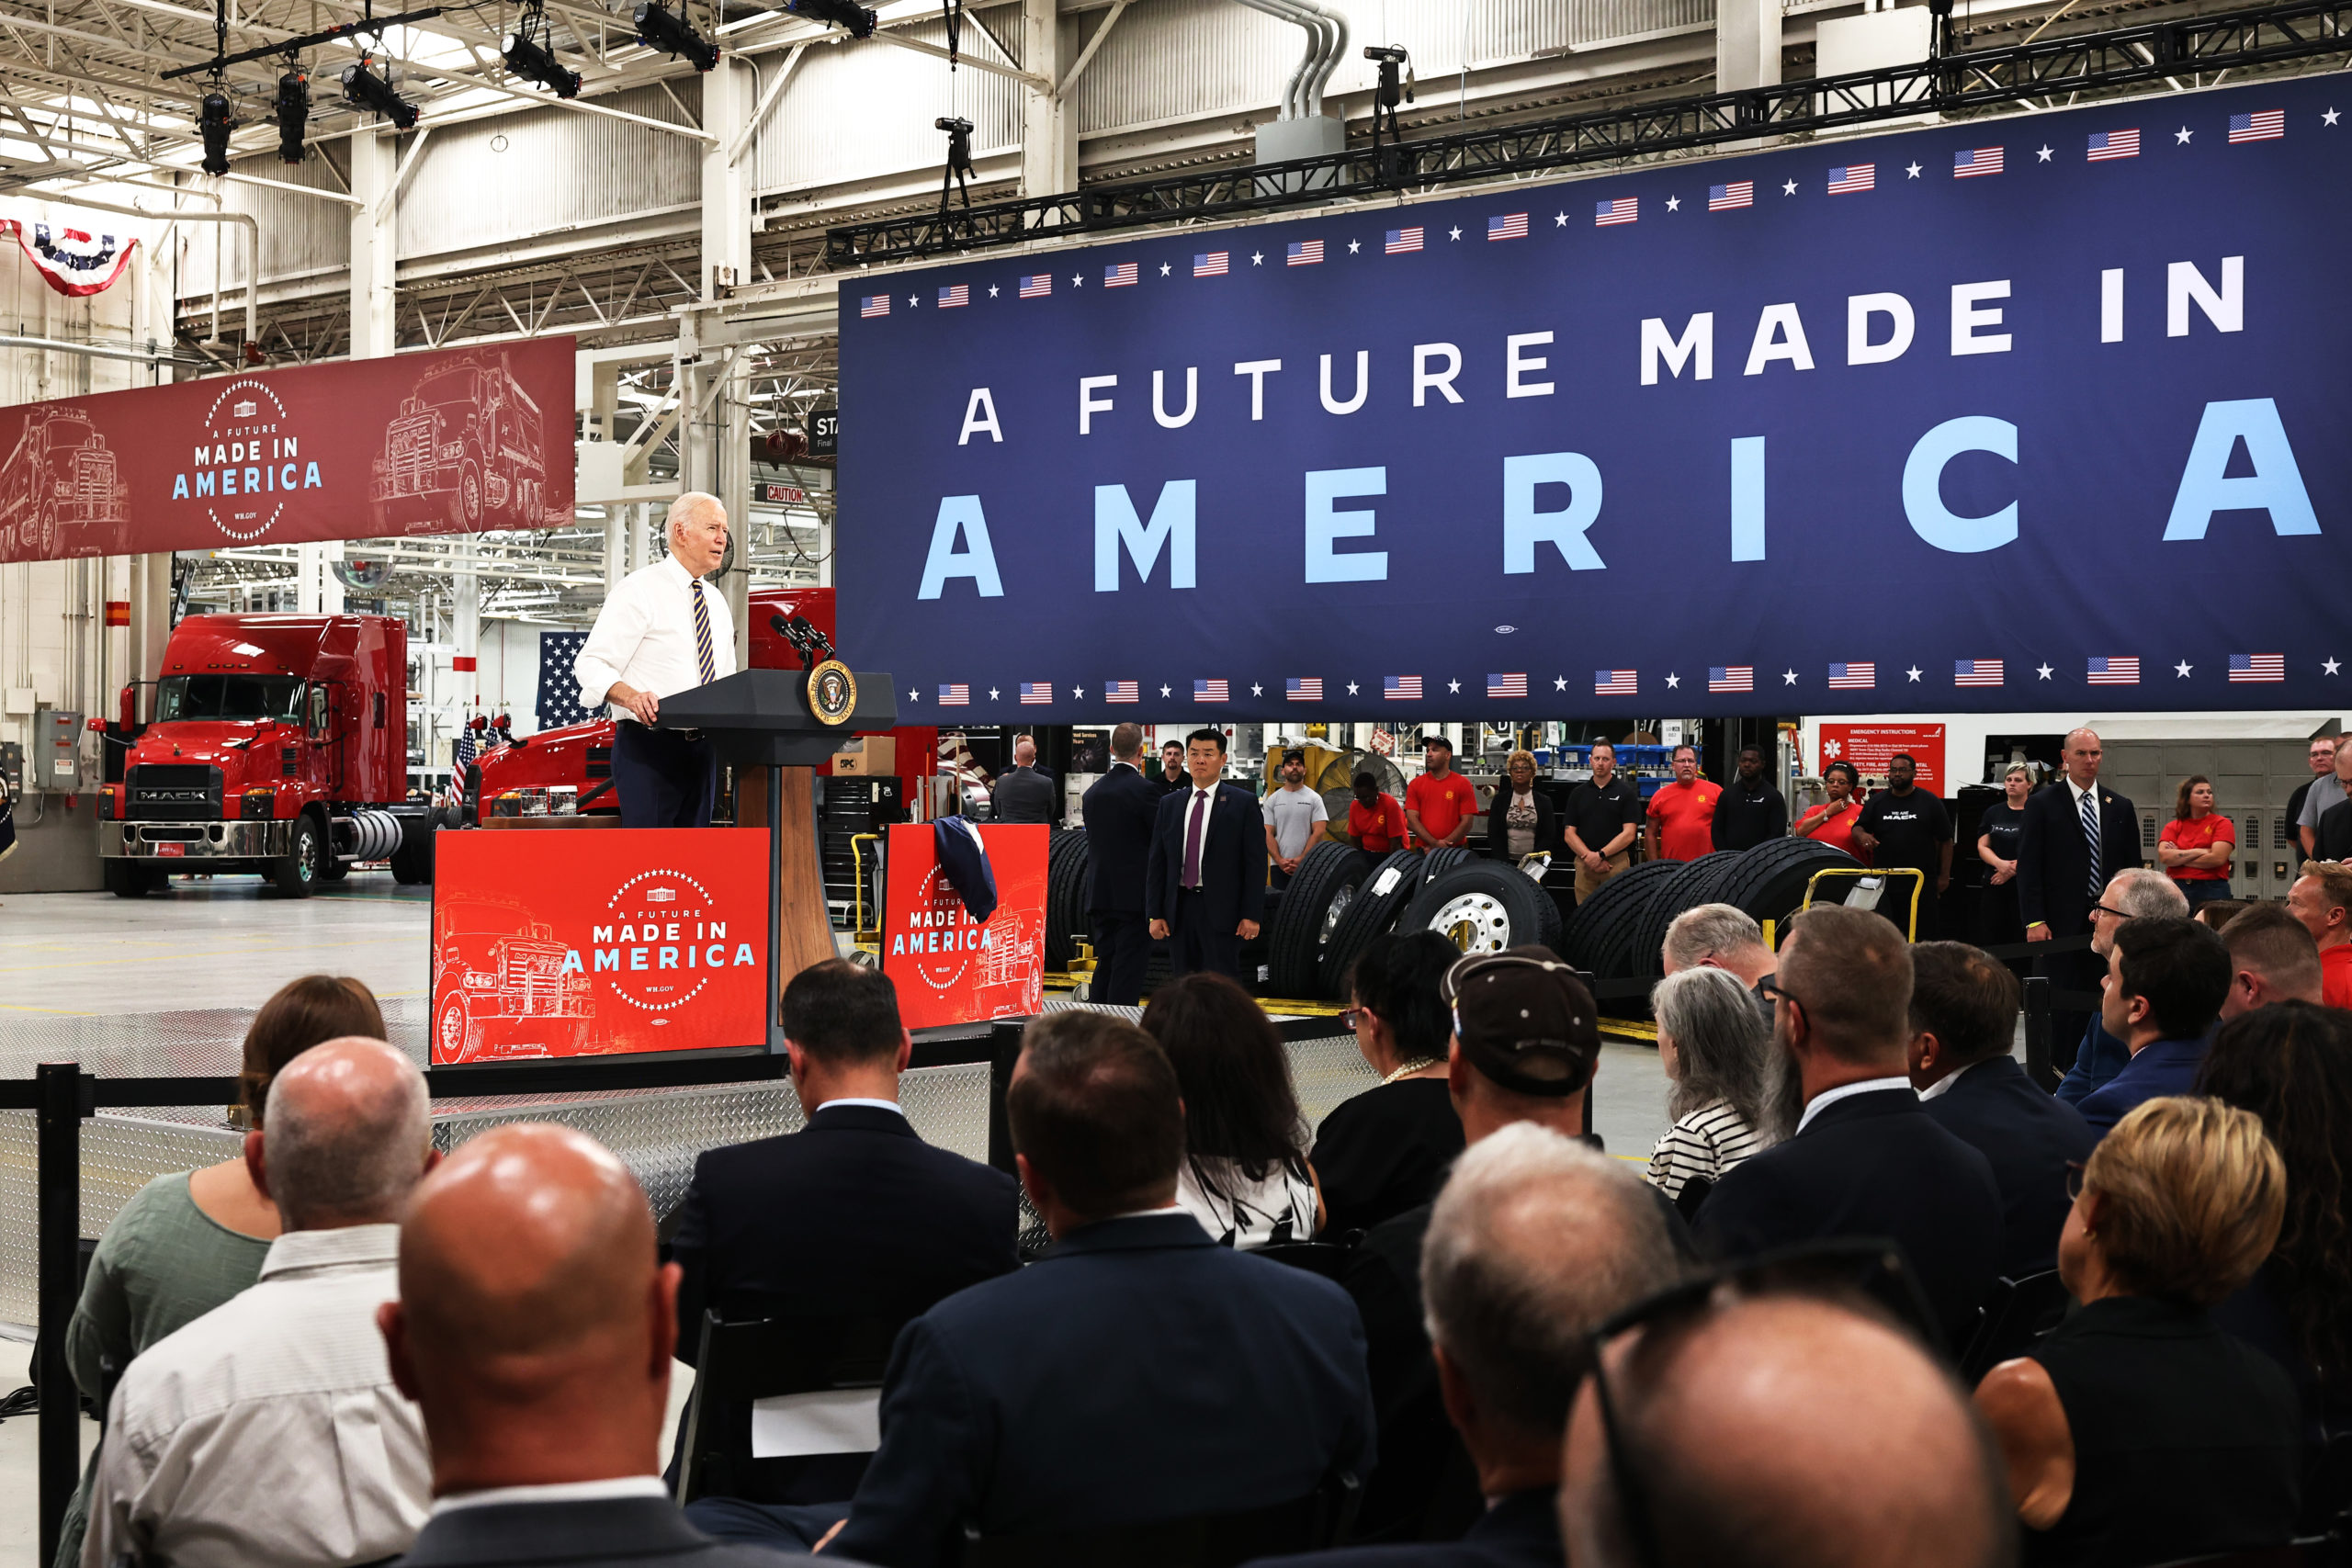 President Joe Biden speaks at a truck facility on Wednesday in Macungie, Pennsylvania. (Michael M. Santiago/Getty Images)